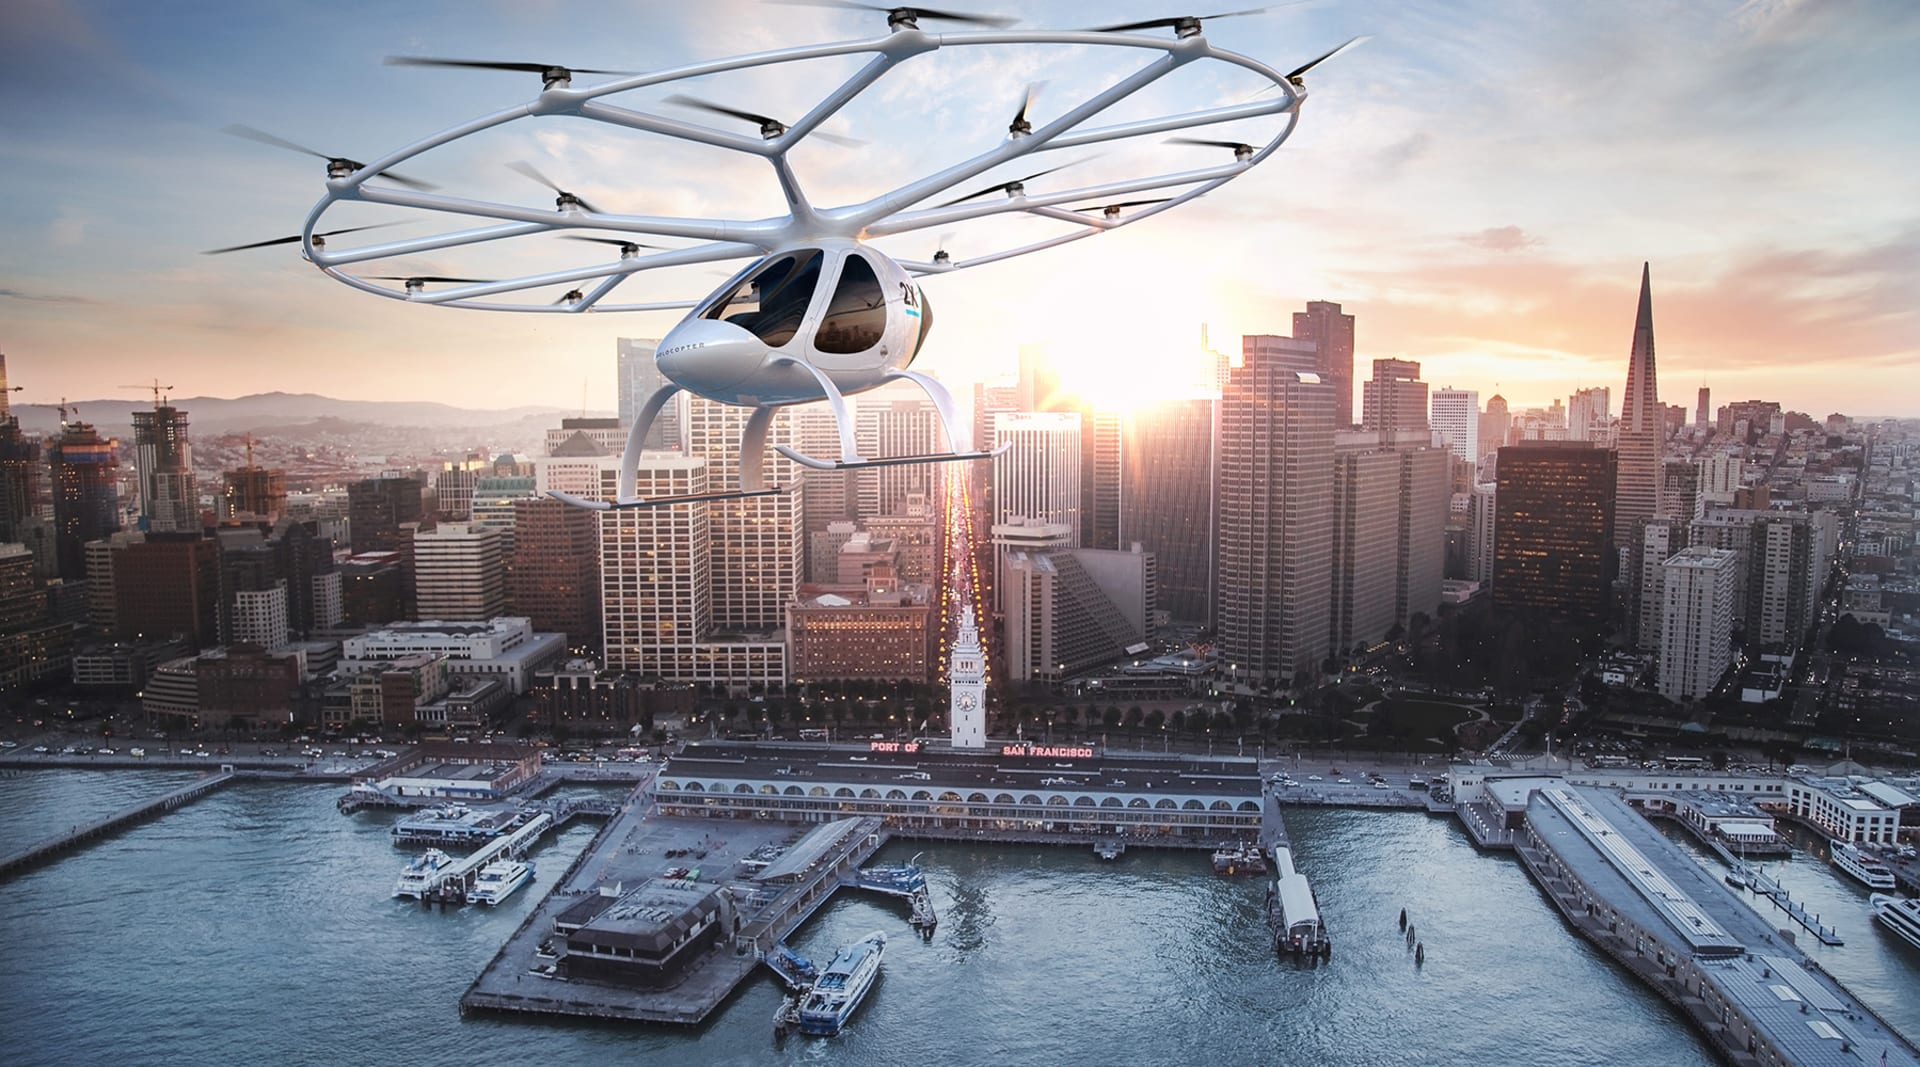 HERO volocopter 2x outbound